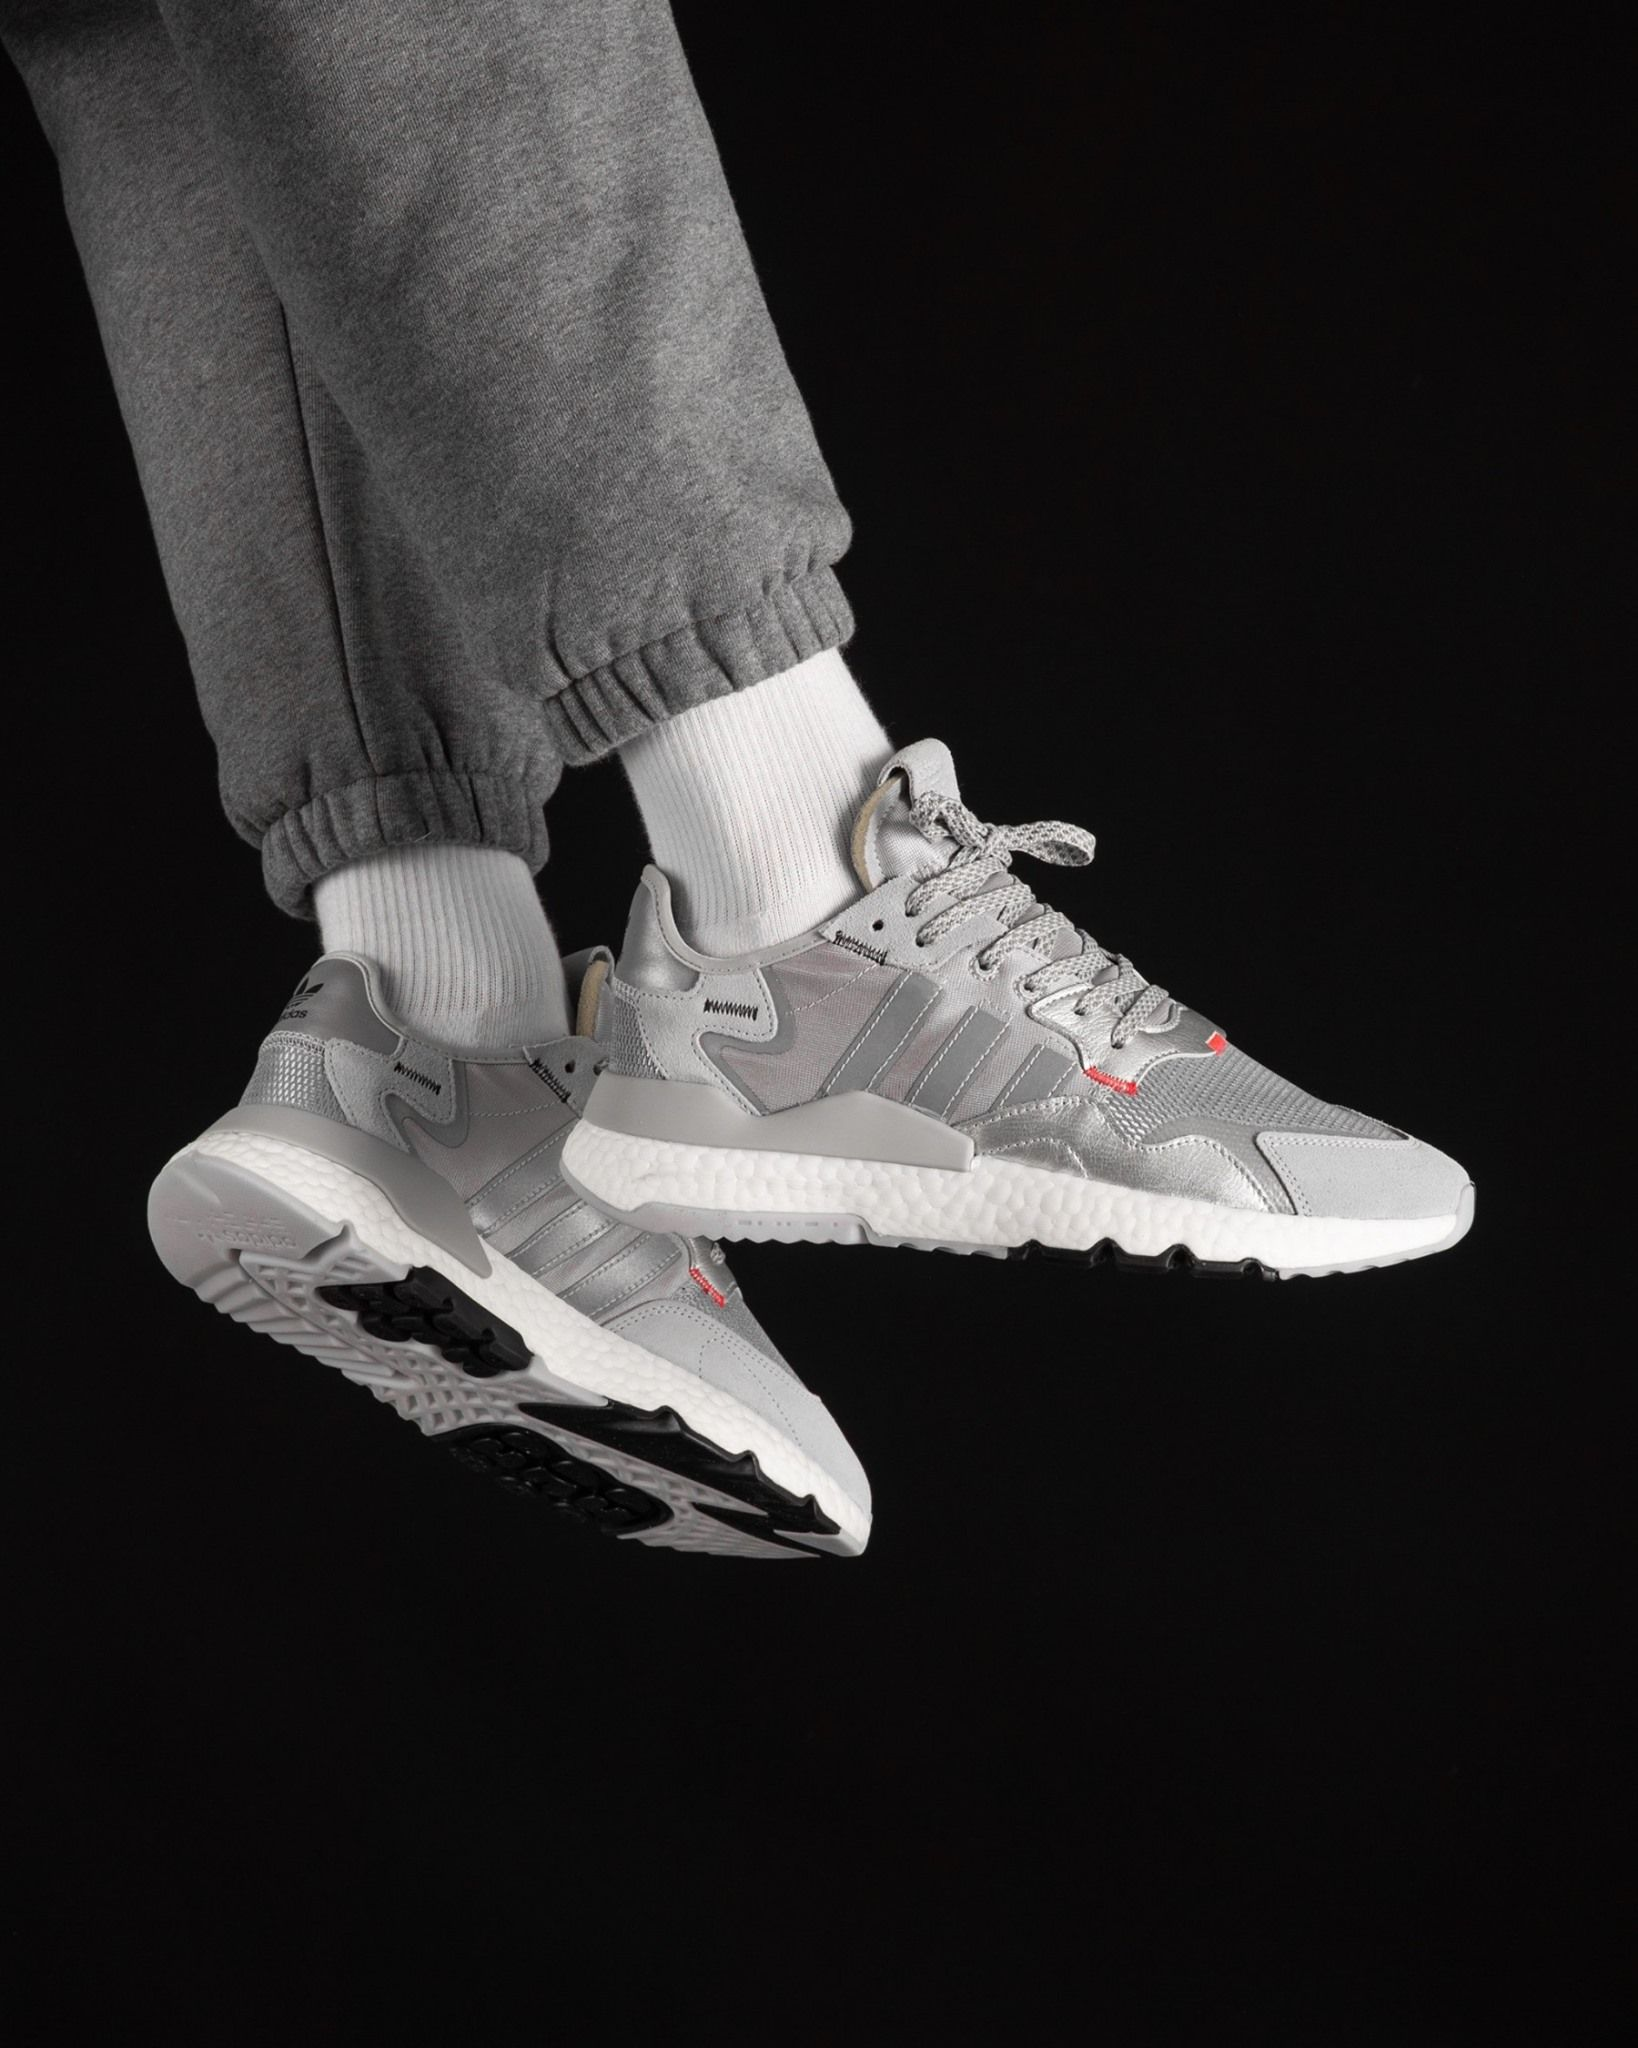 ADIDAS NITE JOGGER SHOES in 2020 | Joggers shoes, Sneakers